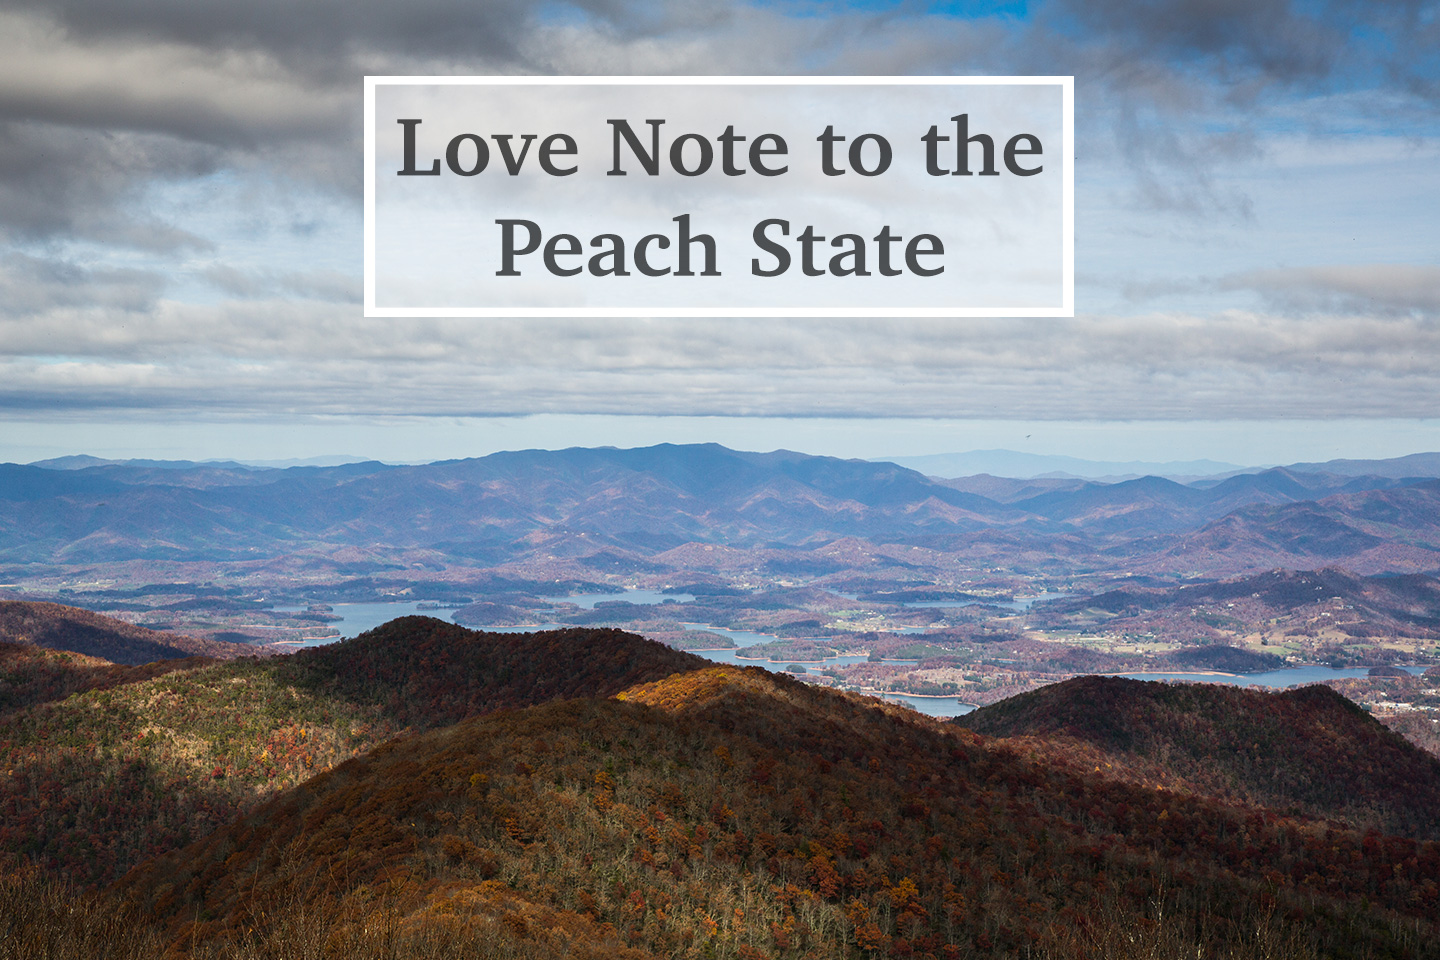 love note to the peach state